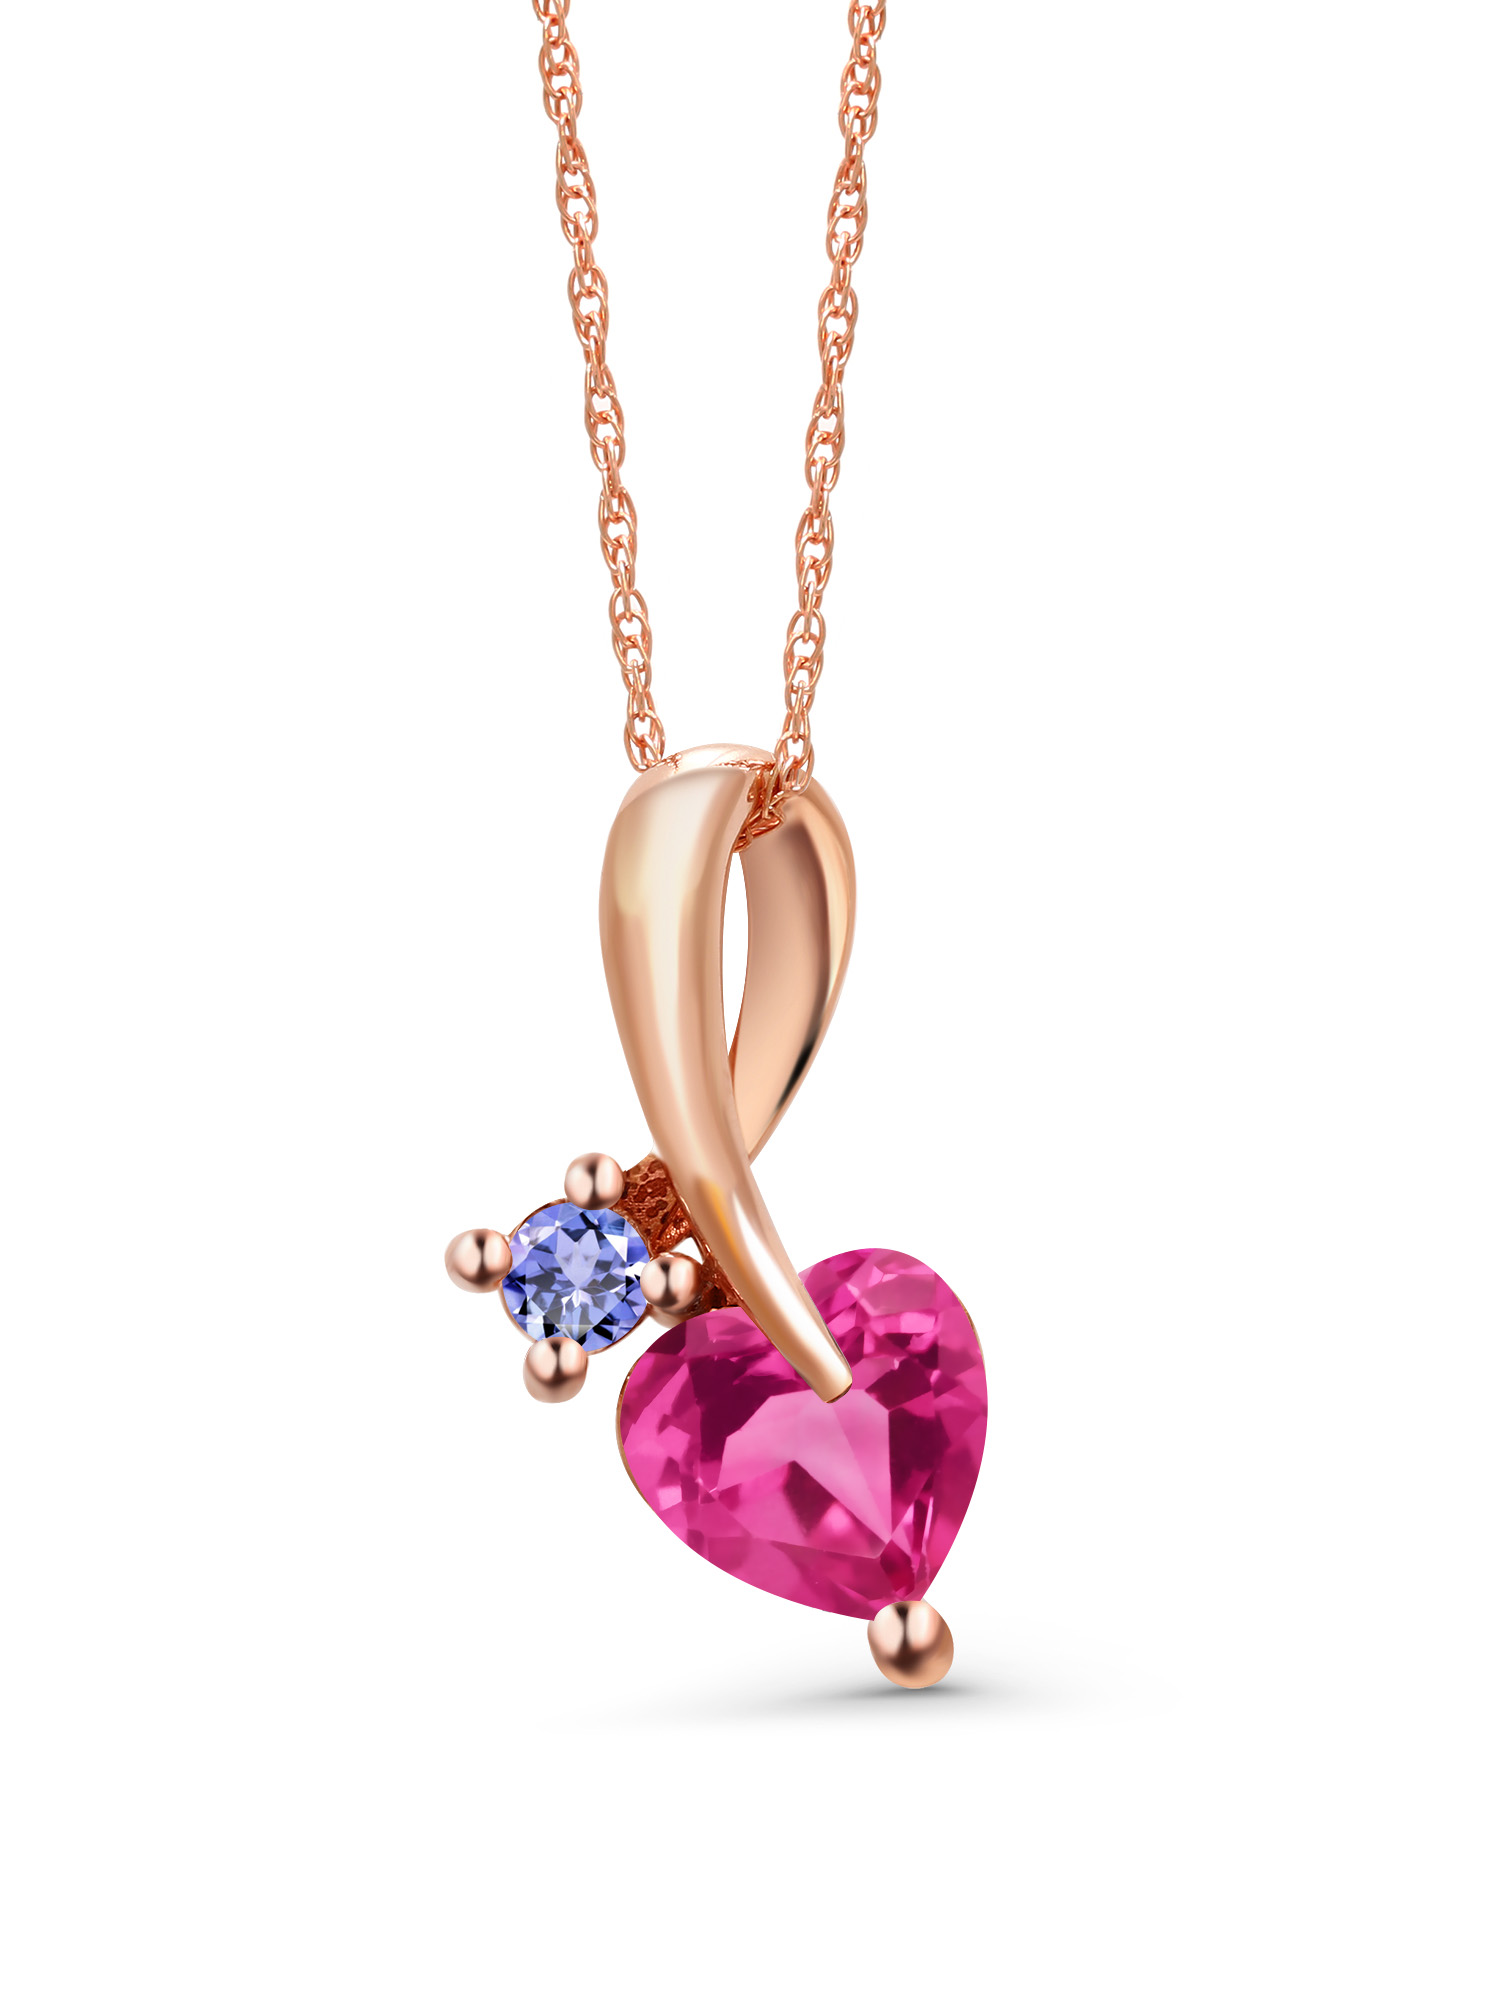 0.92 Ct Heart Shape Pink Created Sapphire Blue Tanzanite 10K Rose Gold Pendant by